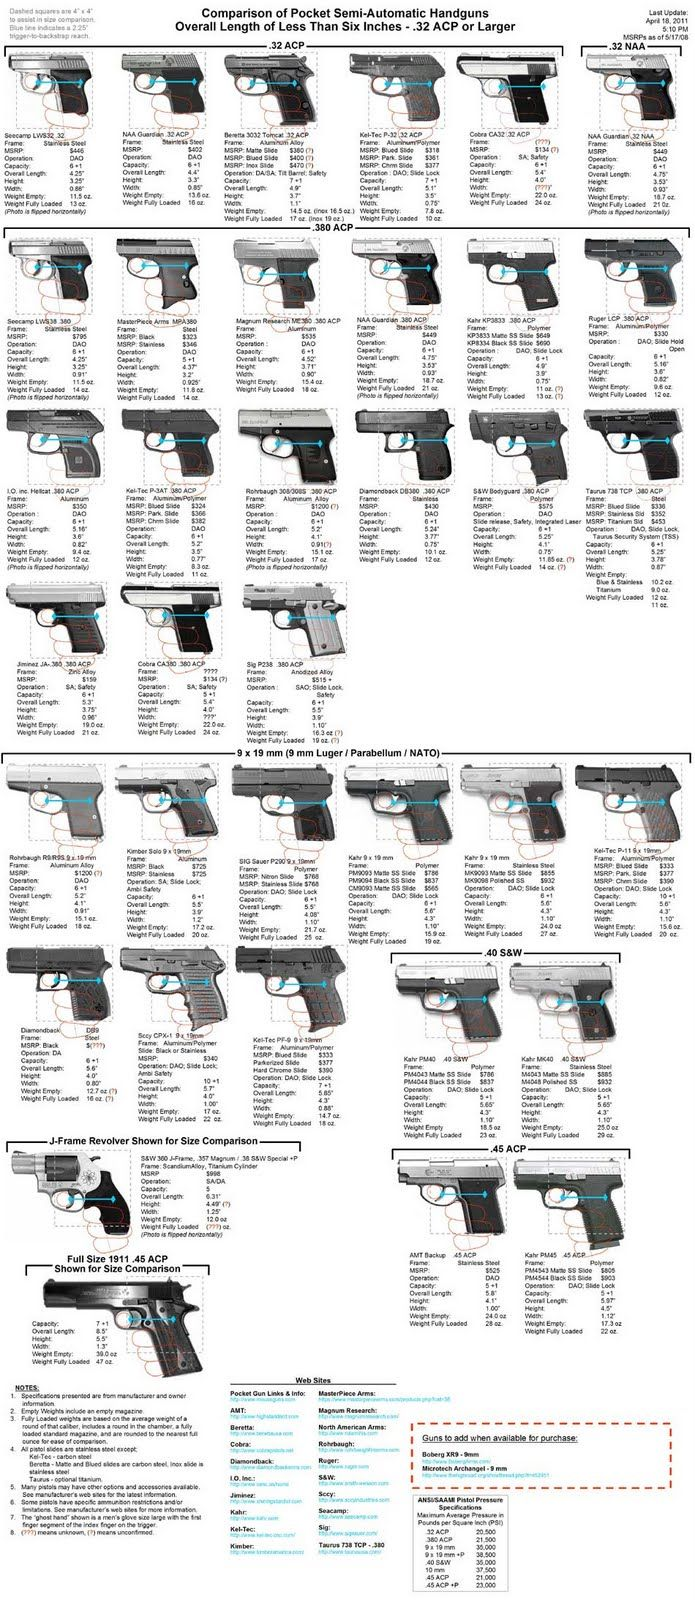 73 Best Saving Images On Pinterest Guns Hand And Firearms Mosin Nagant Parts Diagram Free Download Wiring Diagrams Pictures For Someday Ill Get Around To Getting My Concealed Carry Permit Size Comparison Of Pocket Semi Automatic Handguns With Overall Length Less Than Six